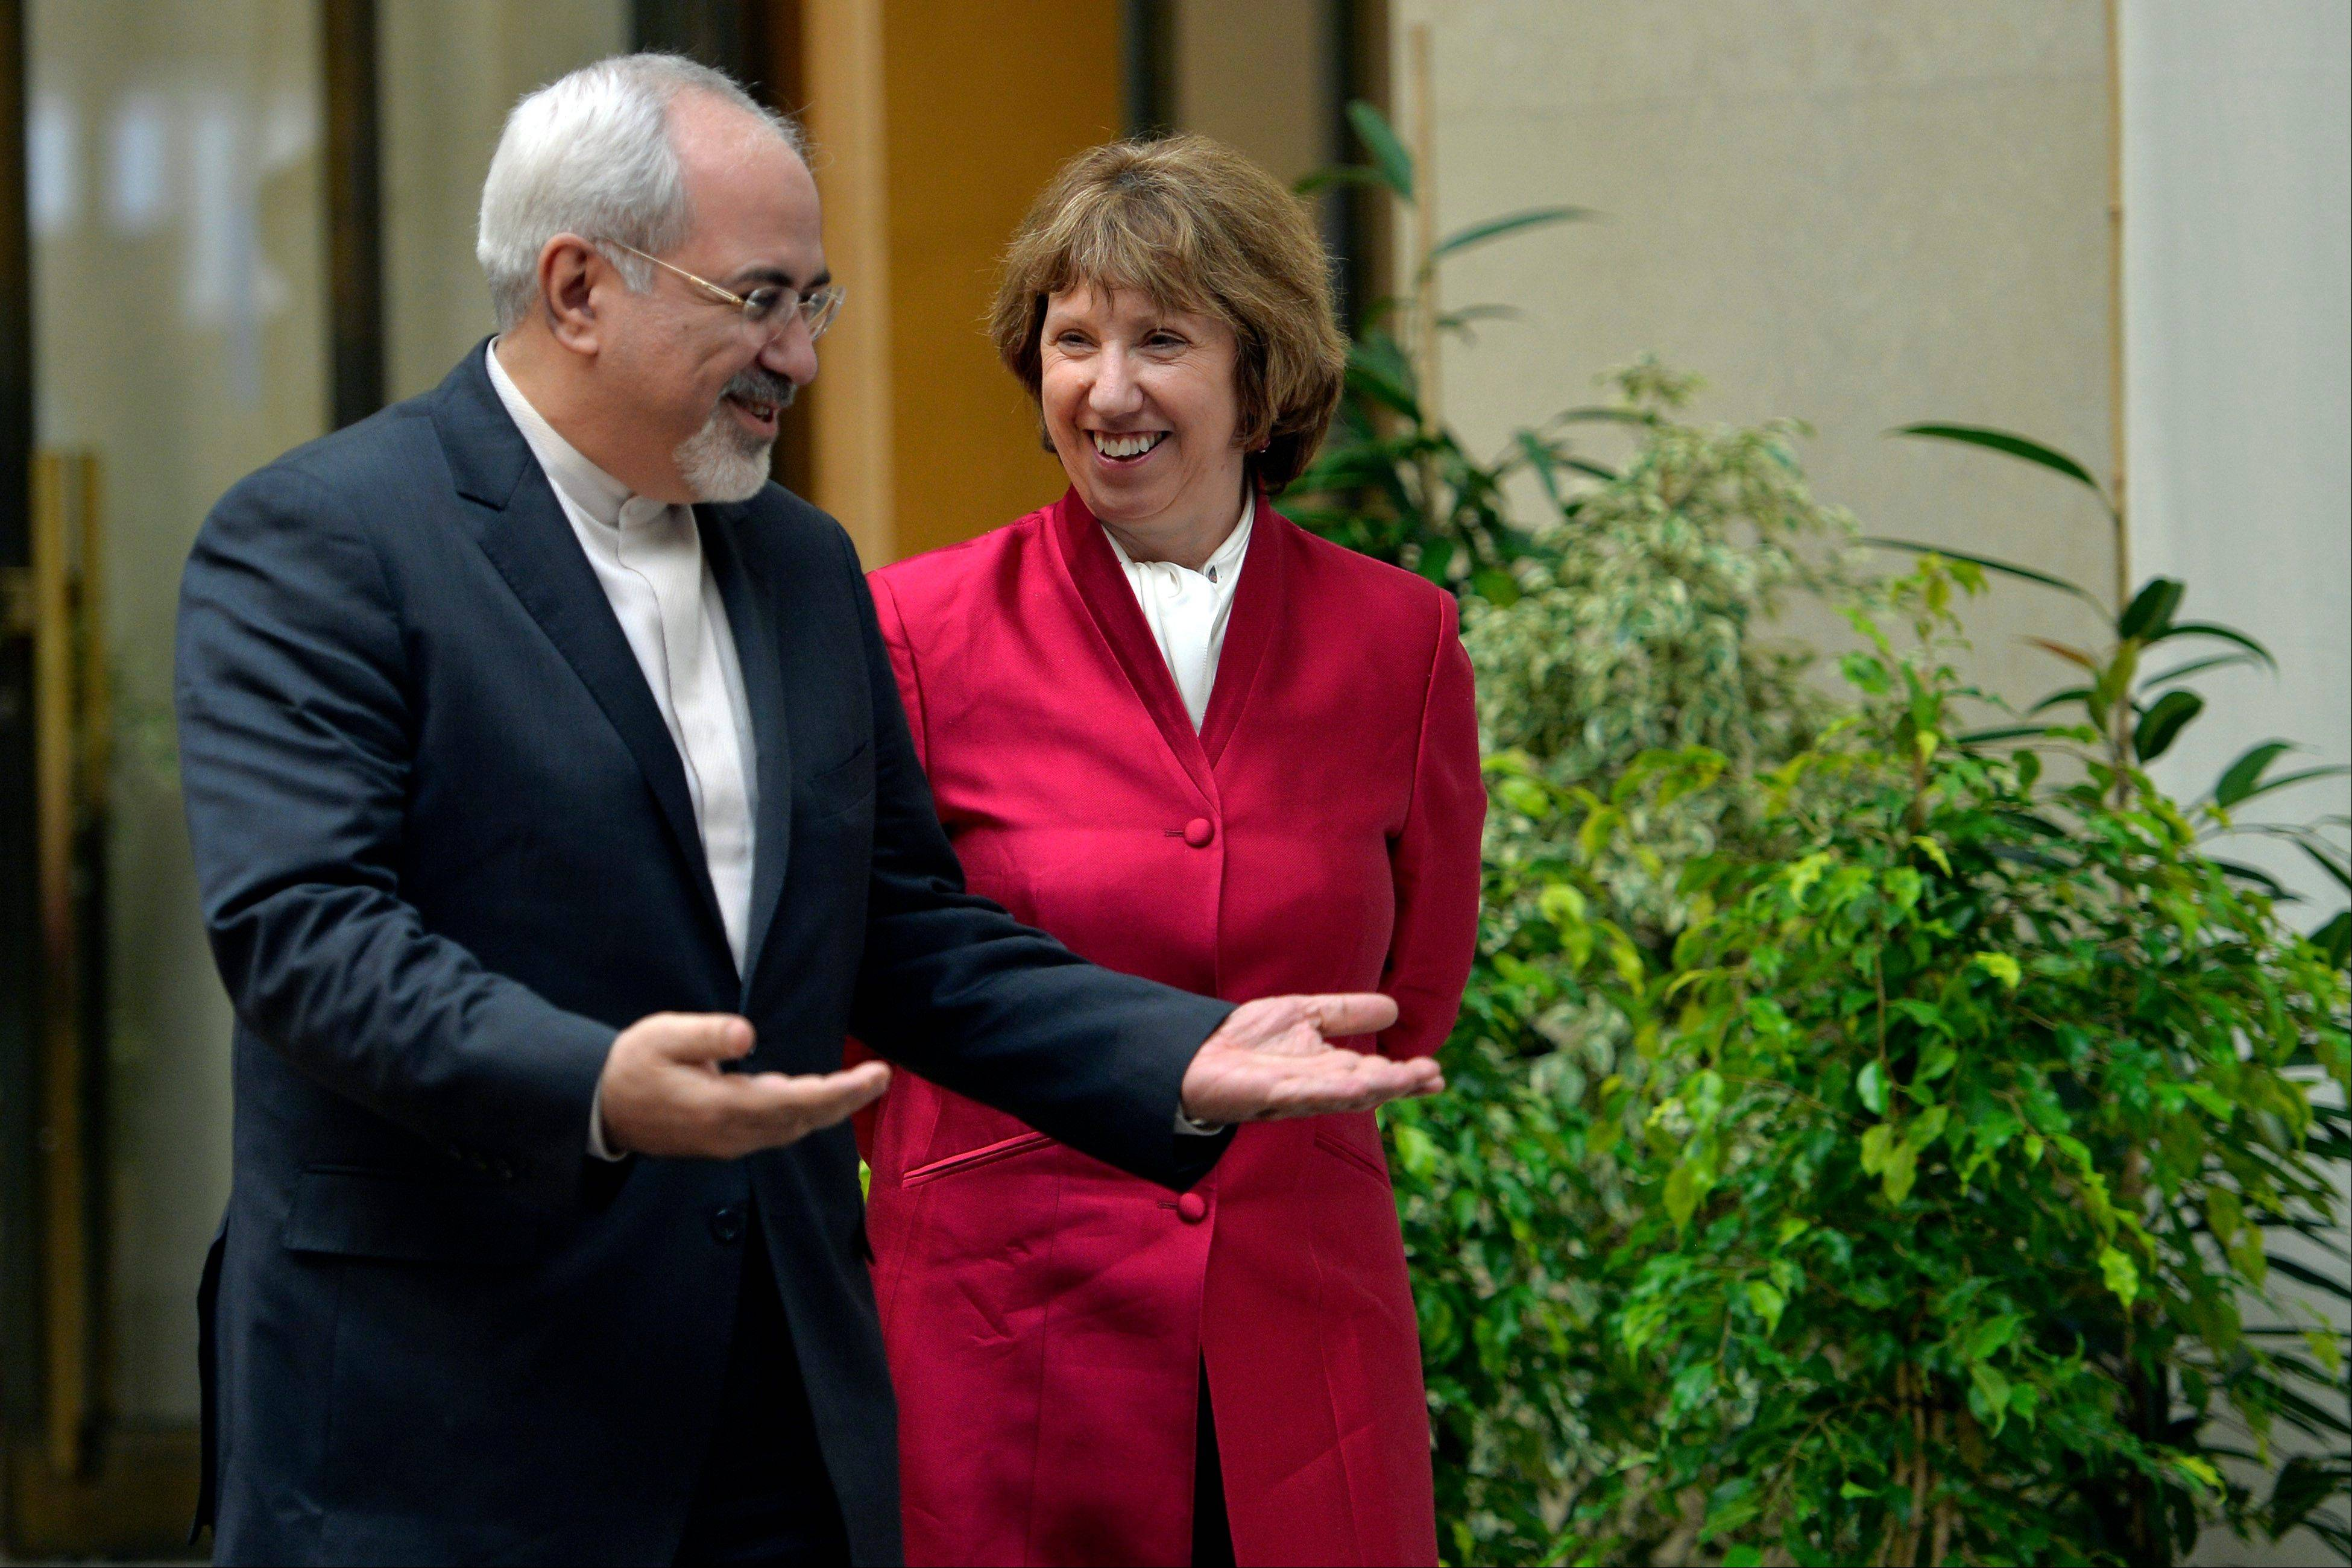 EU High Representative for Foreign Affairs Catherine Ashton, right, walks next to Iranian Foreign Minister Mohammed Javad Zarif, left, before the start of two days of closed-door nuclear talks at the United Nations offices in Geneva Switzerland.